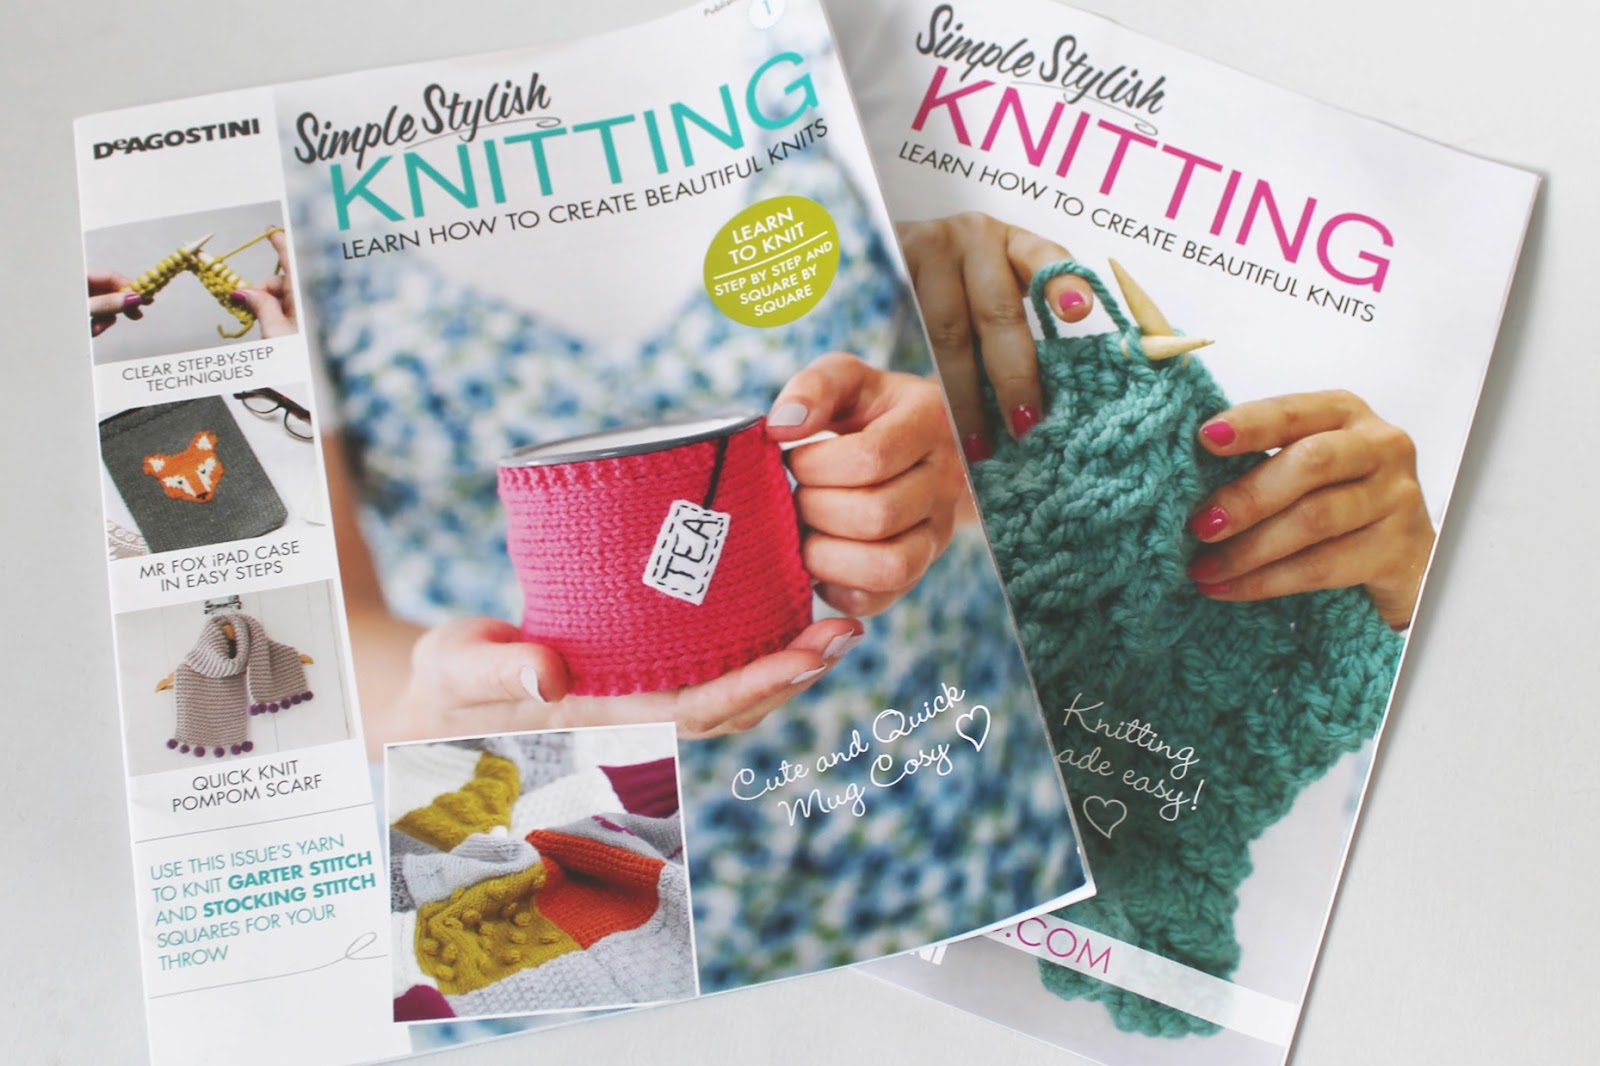 dress - Stylish simply knitting binders video